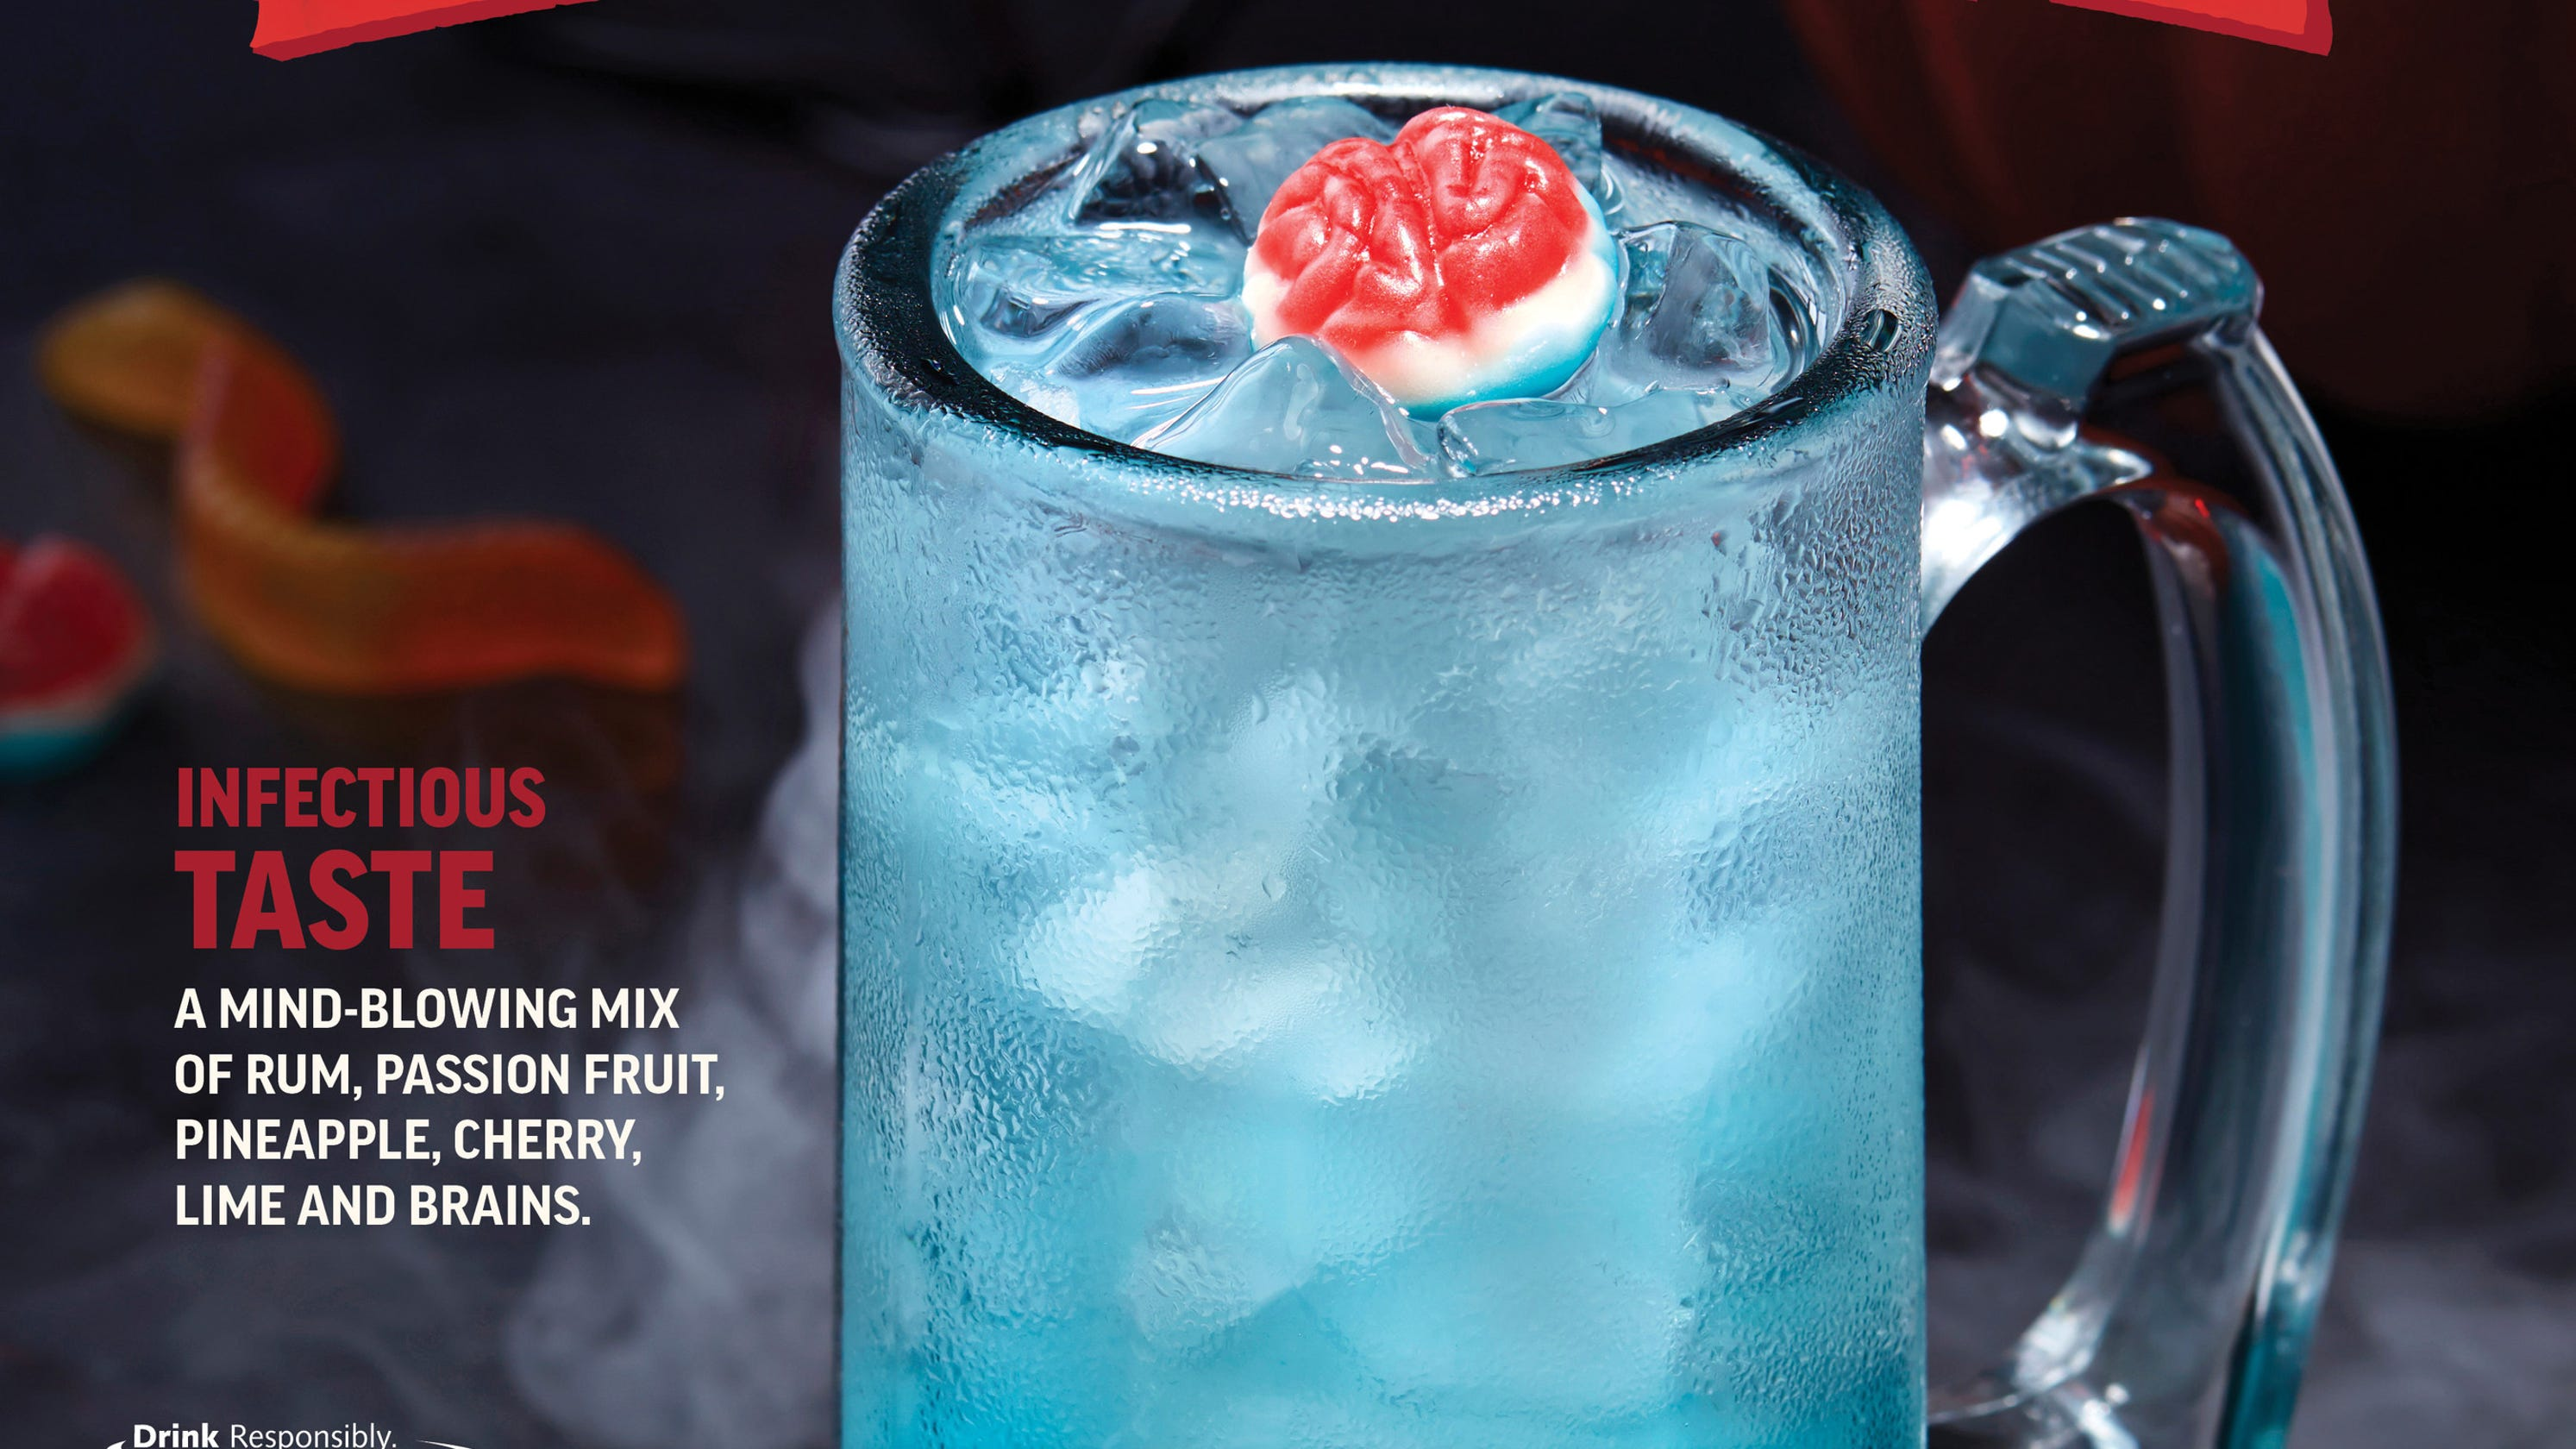 Applebee's Dollar Zombie Drink Is A Halloween Treat With A